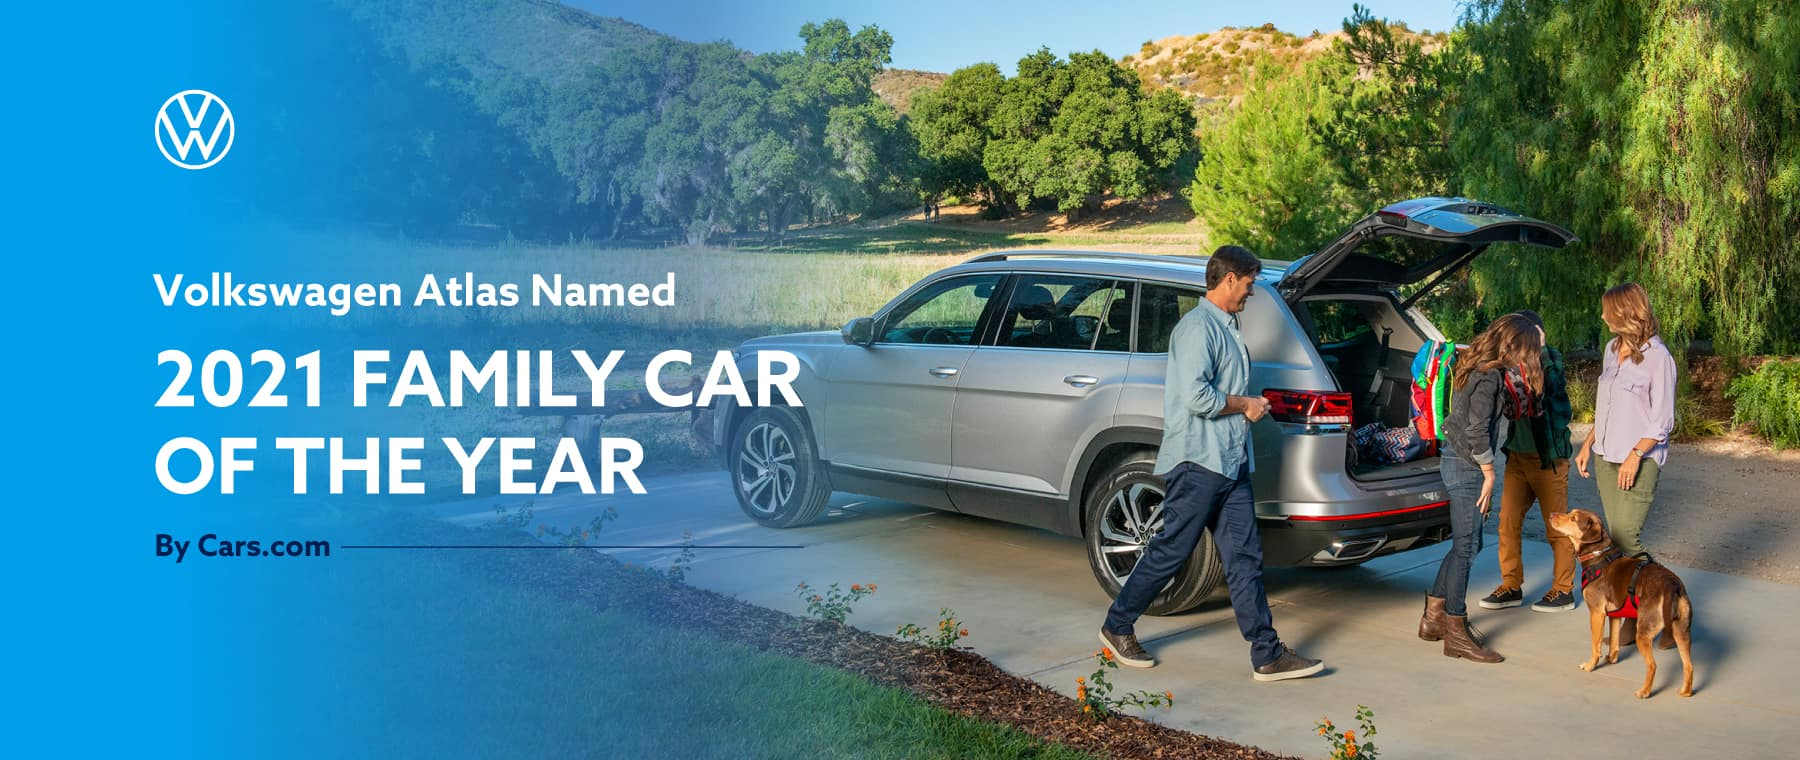 VW Atlas Named Family Car of the Year